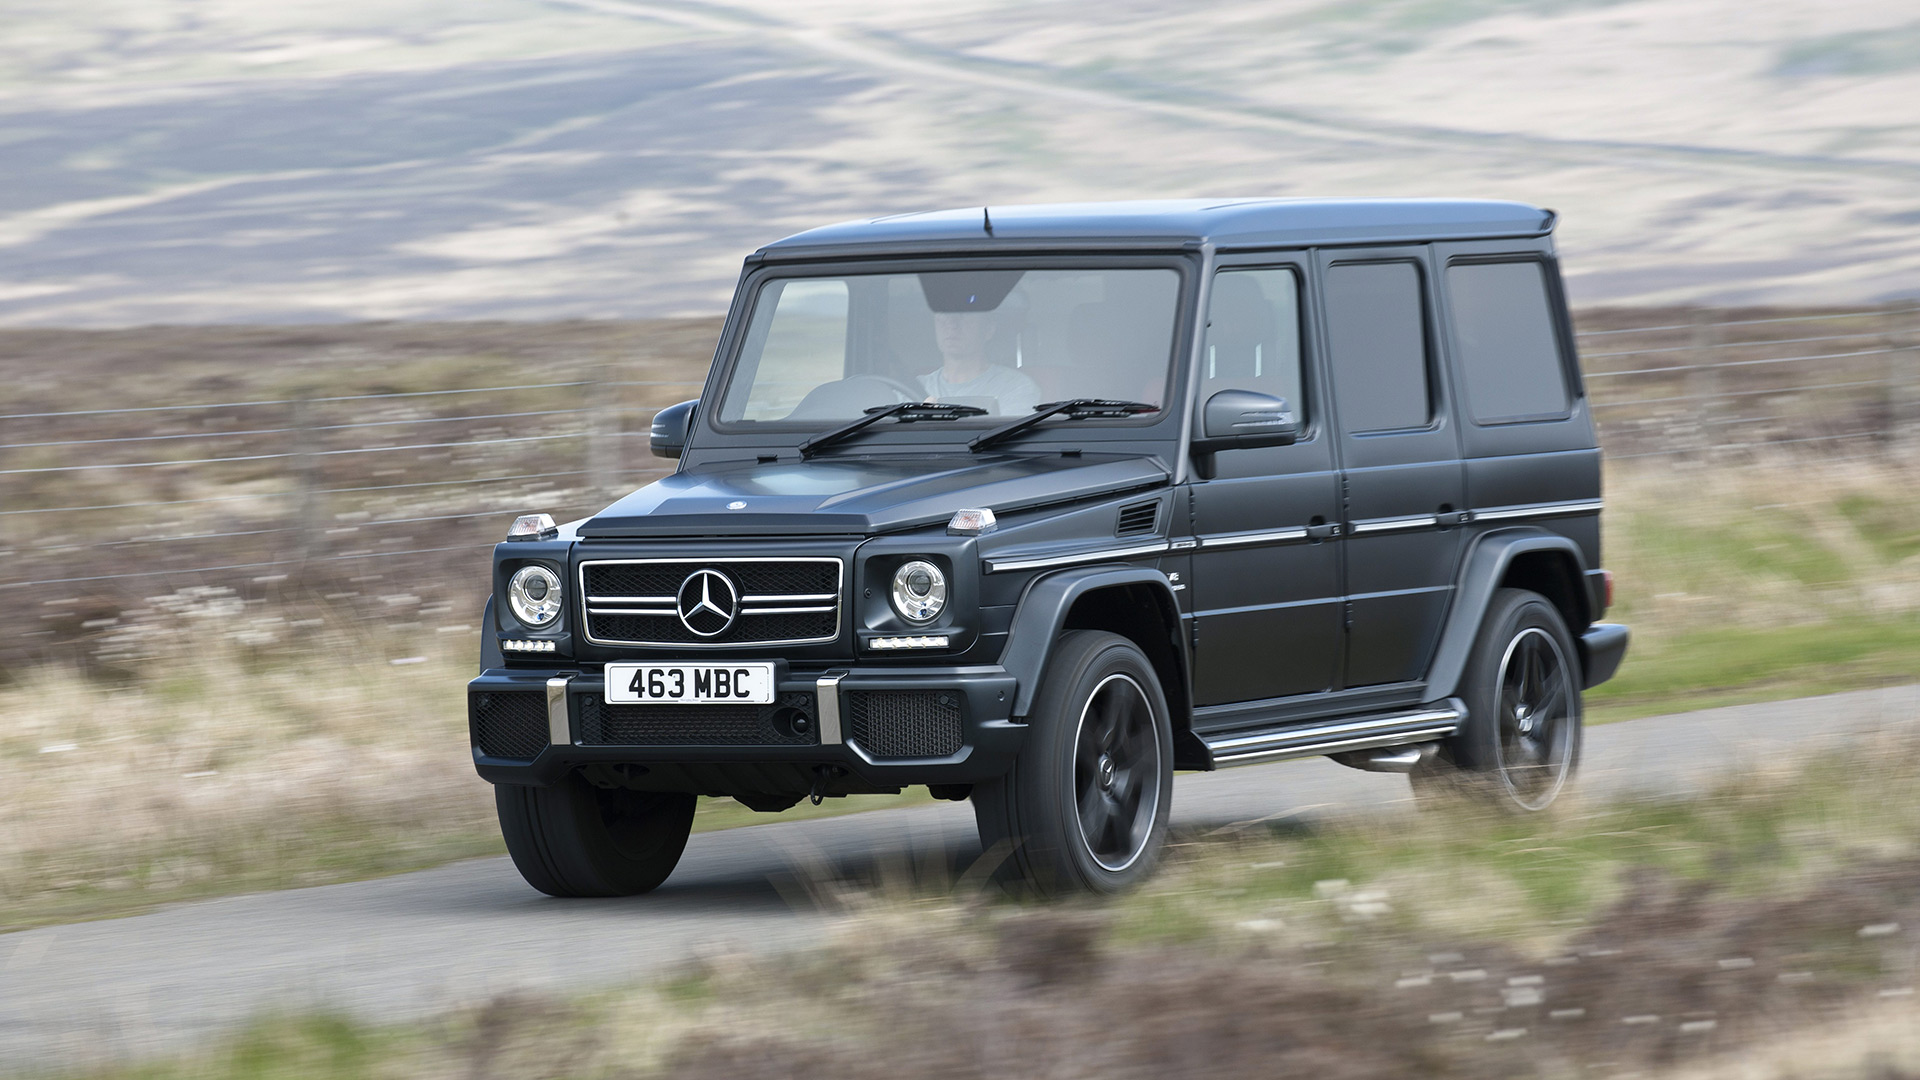 Mercedes benz g class 2017 g 63 amg price mileage for Mercedes benz g class mpg